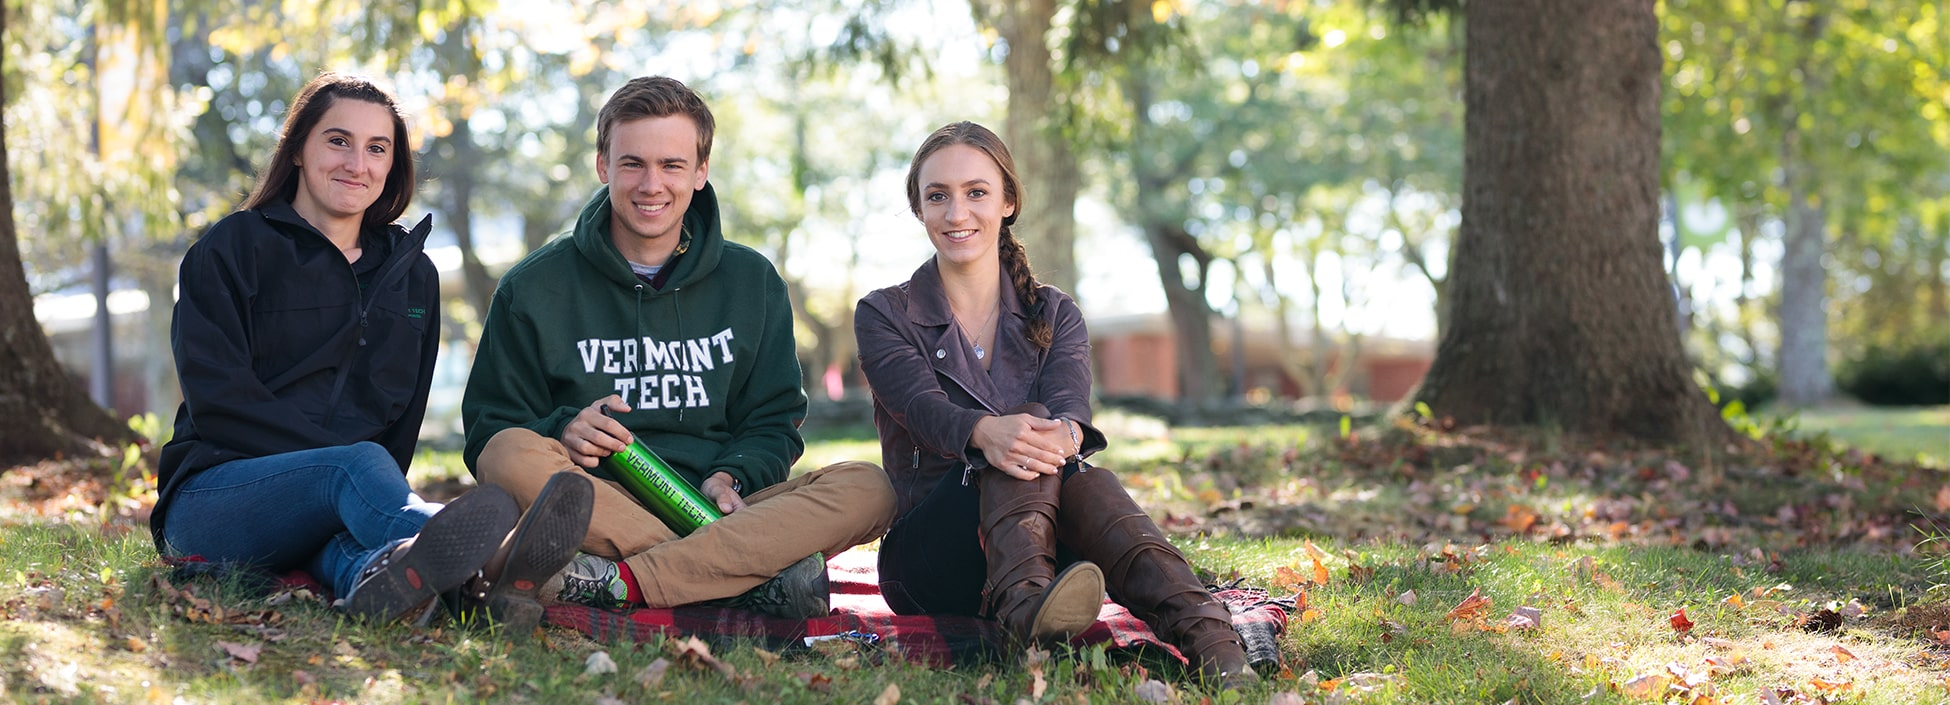 Male student, female students, sitting under trees, smiling